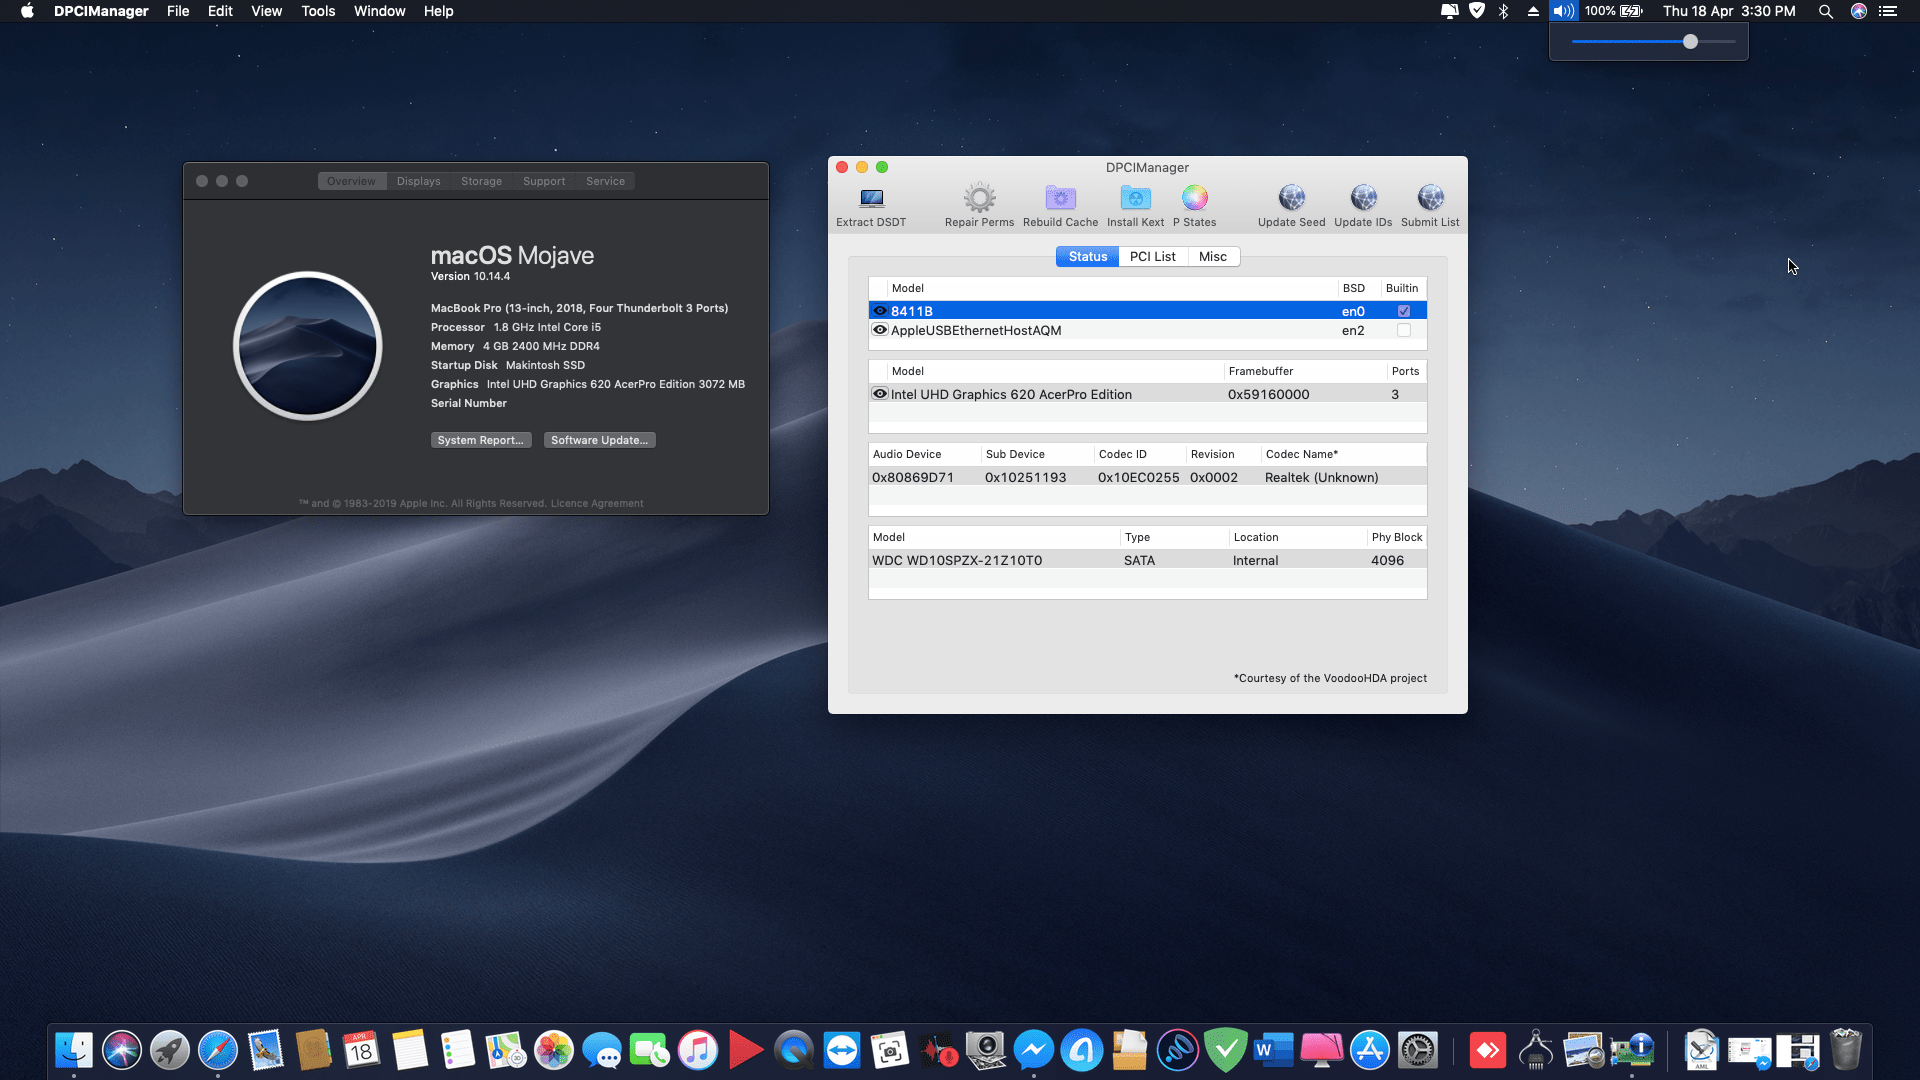 Succes Hackintosh macOS Mojave 10.14.4 Build 18E226 at Acer Aspire 5 A515-51-58XP